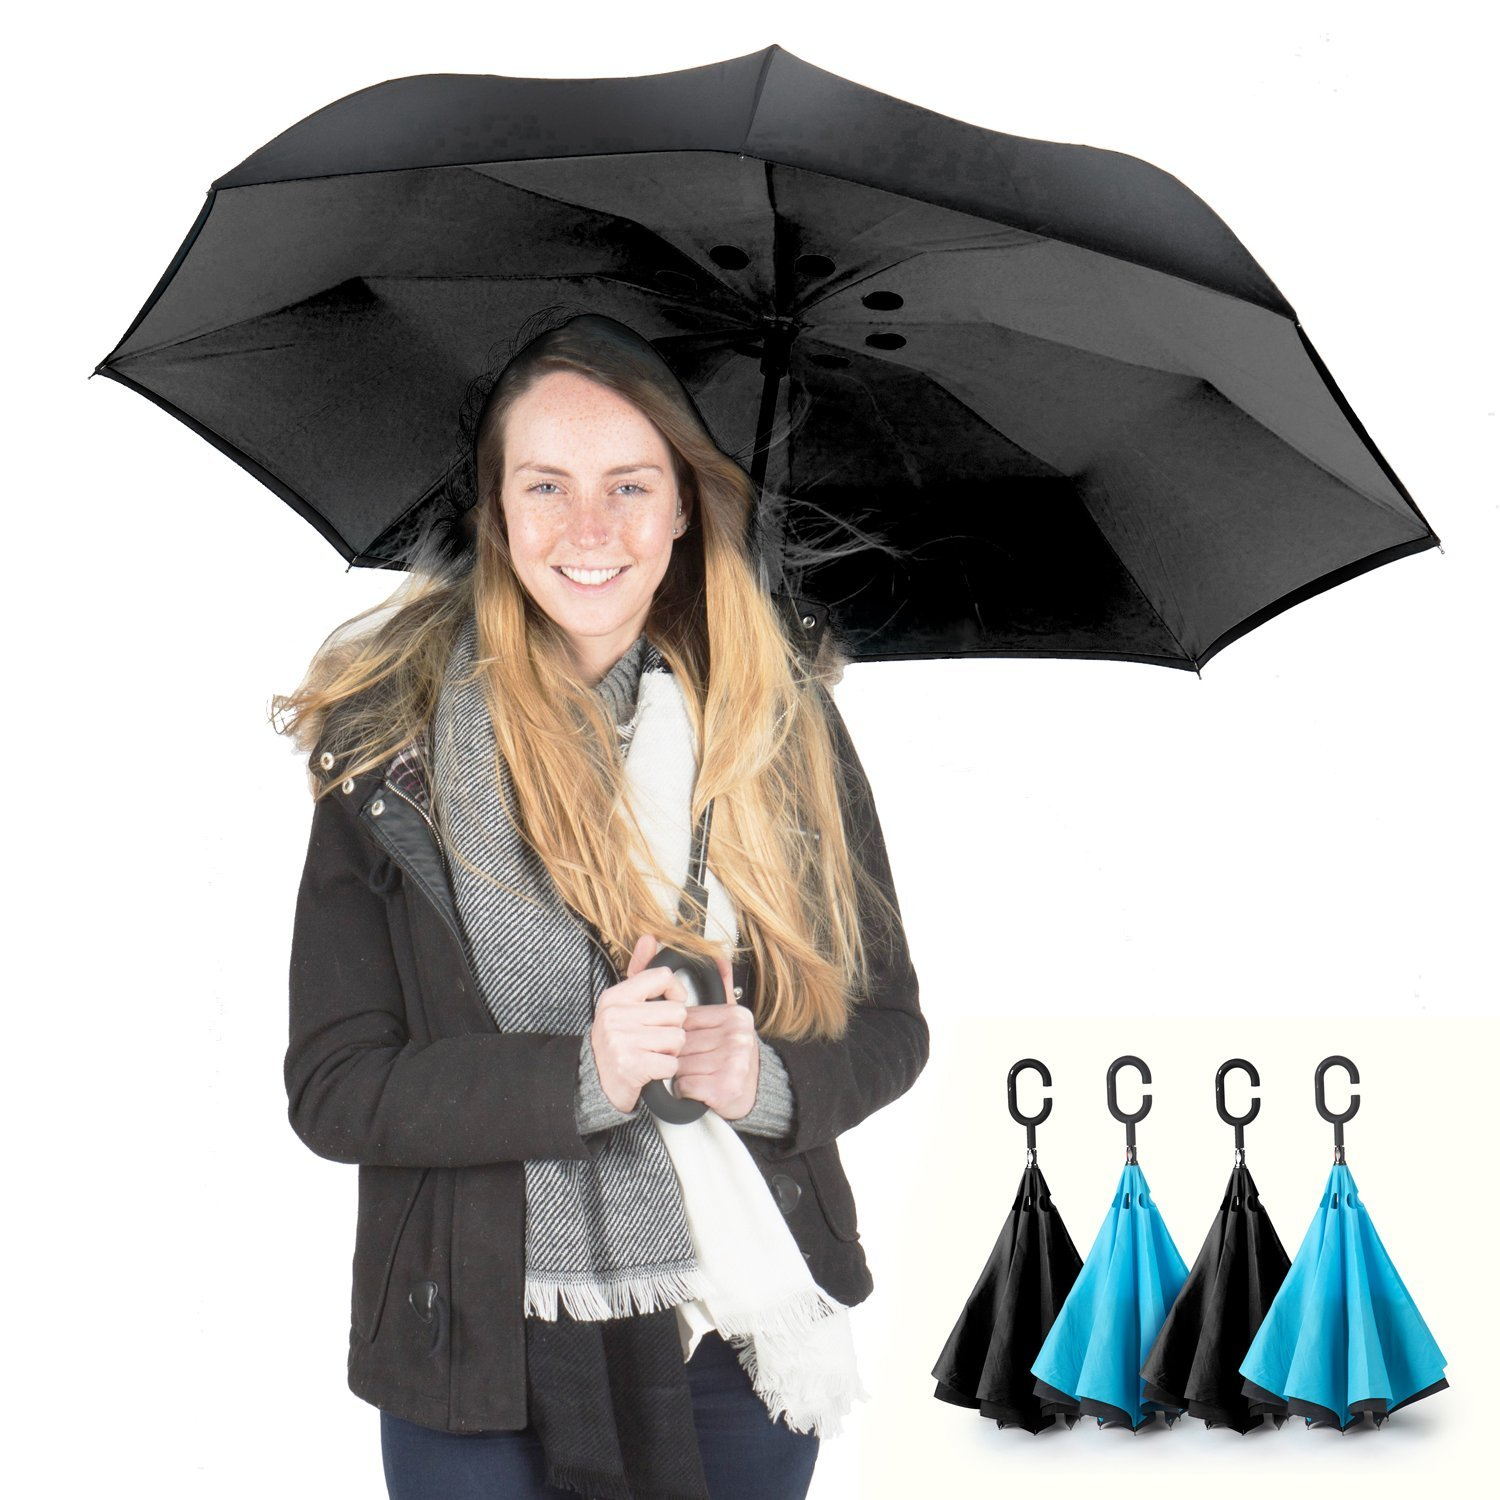 1 DAY SALE! PowerLix Inverted Umbrella - Double Layer Large Reverse Folding Umbrella for Car Rain Outdoor, Windproof, UV Proof - Hands Free C-Shaped Handle, Self-Standing – For men's and women's